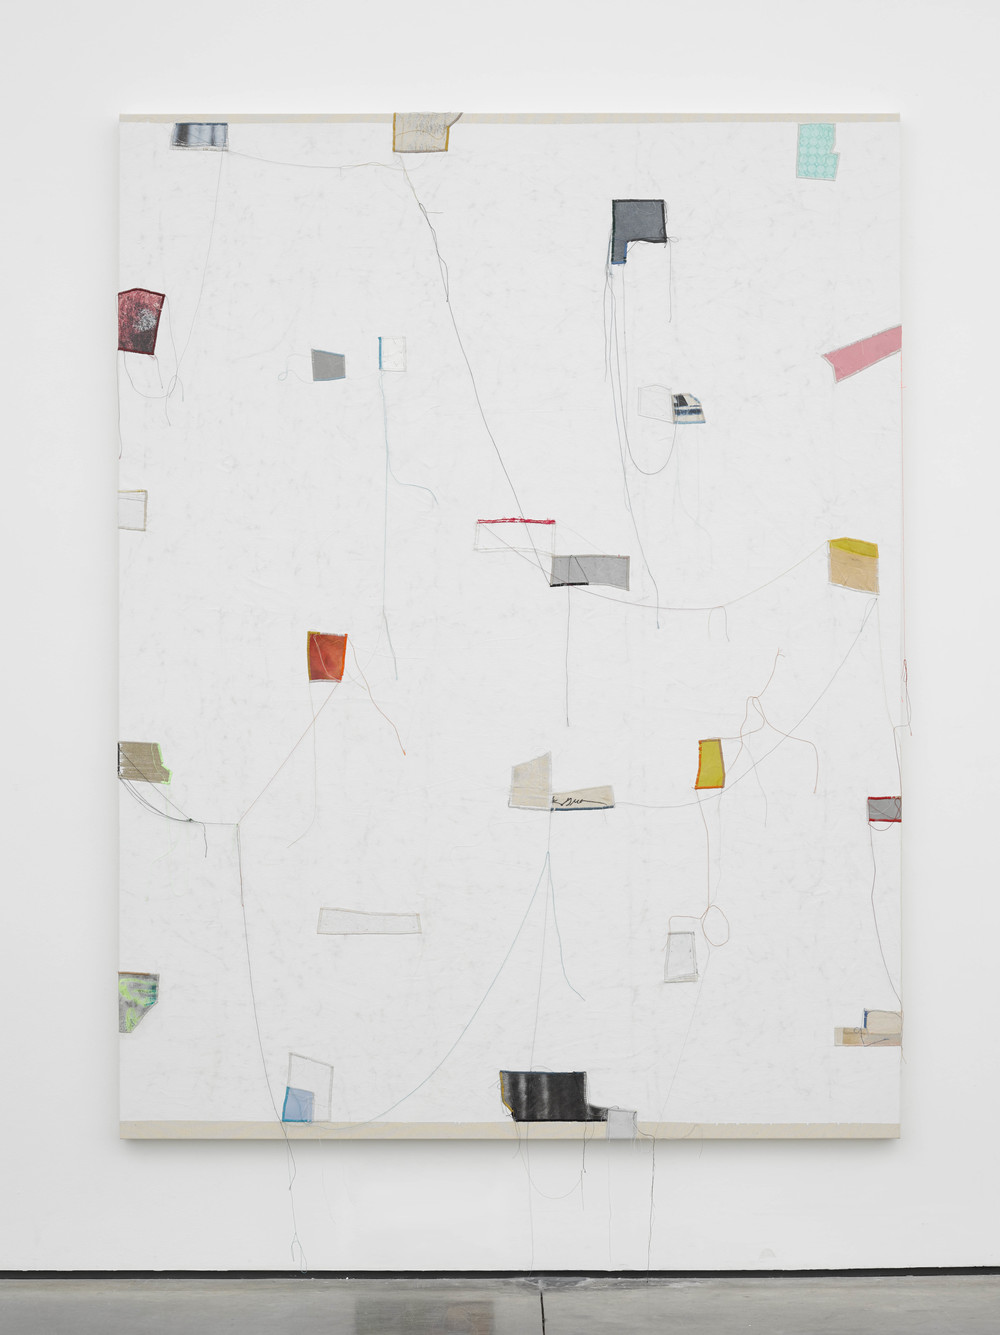 Finding Order: 9, 2014 Canvas, thread, enamel and latex 84 x 64 inches